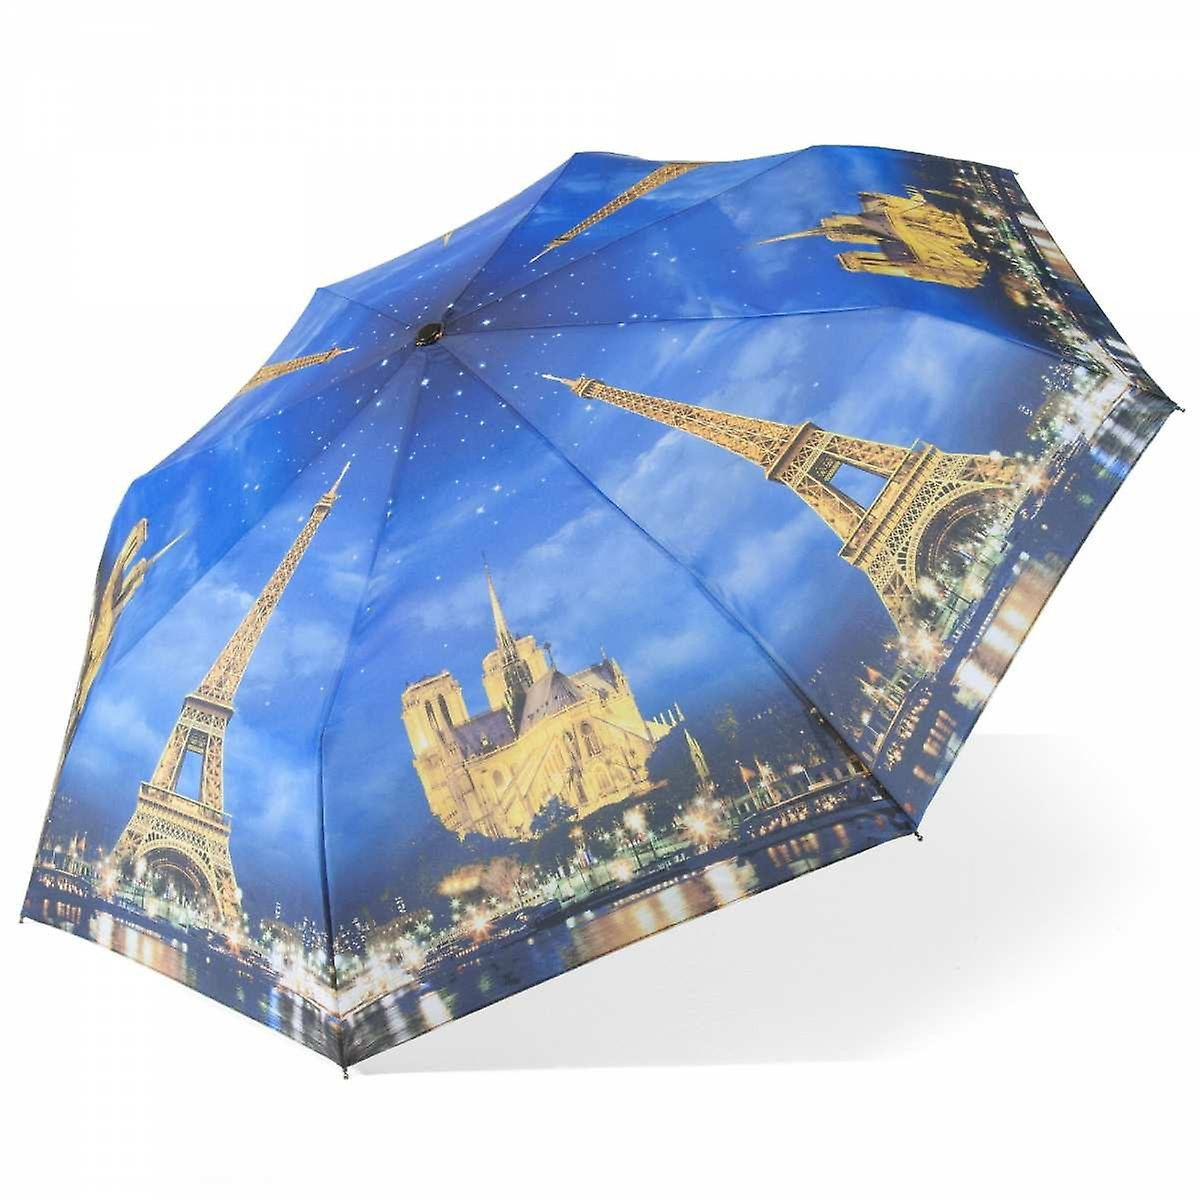 Umbrella automatic Pocket umbrella motif Paris at night